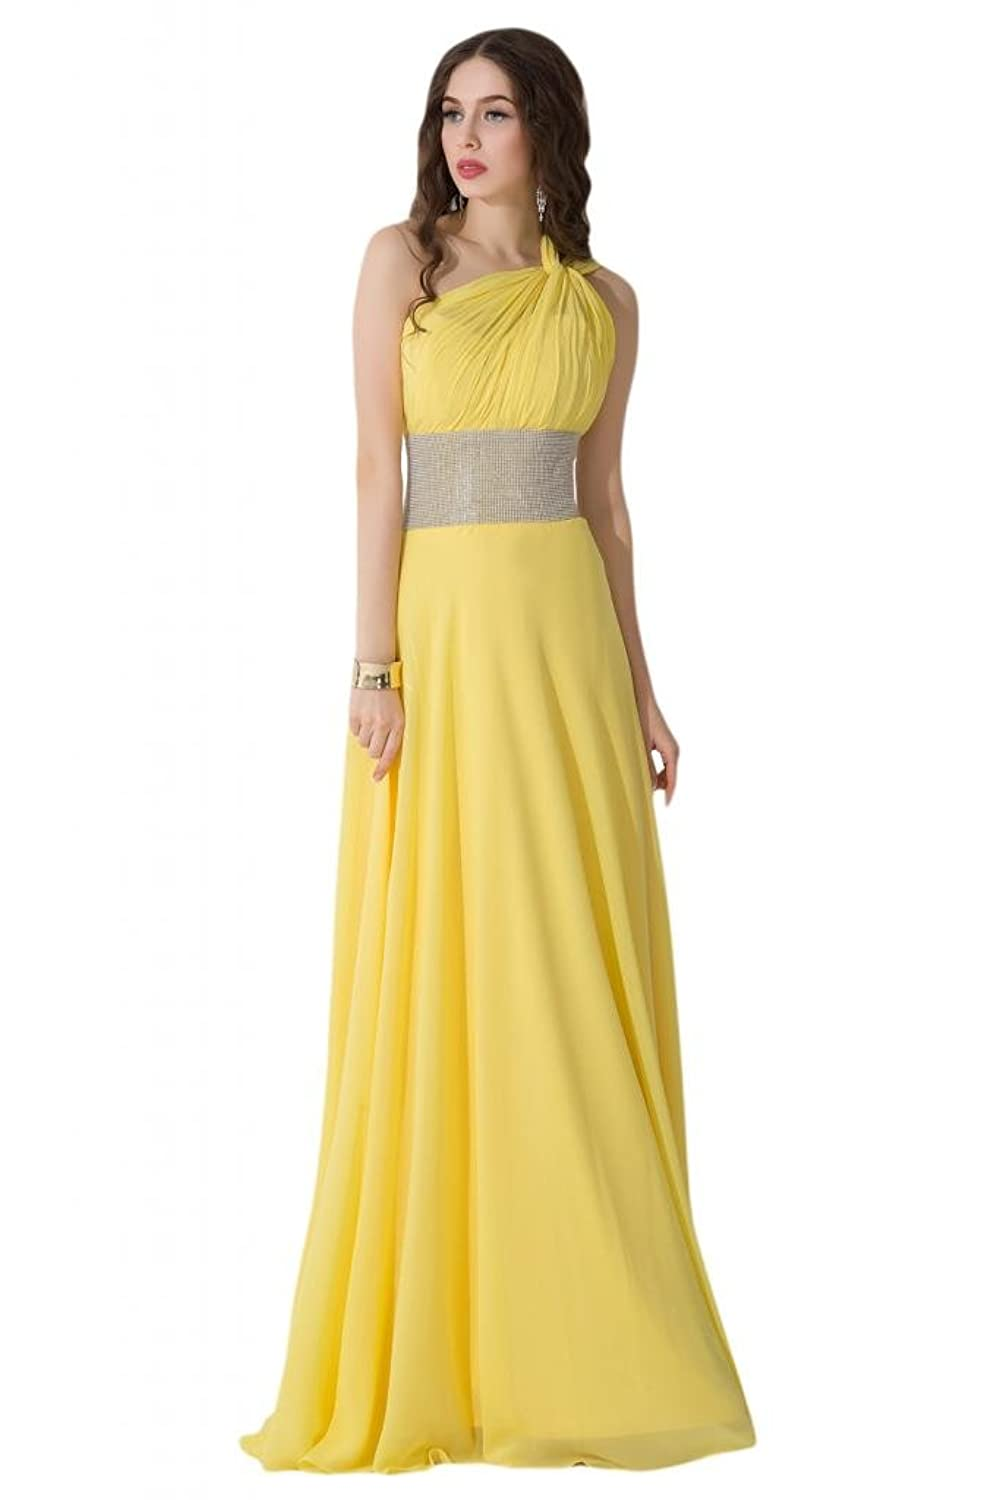 Sunvary Romantic One-shoulder Bridesmaid Dresses Maxi Party Gowns Long Prom Dress